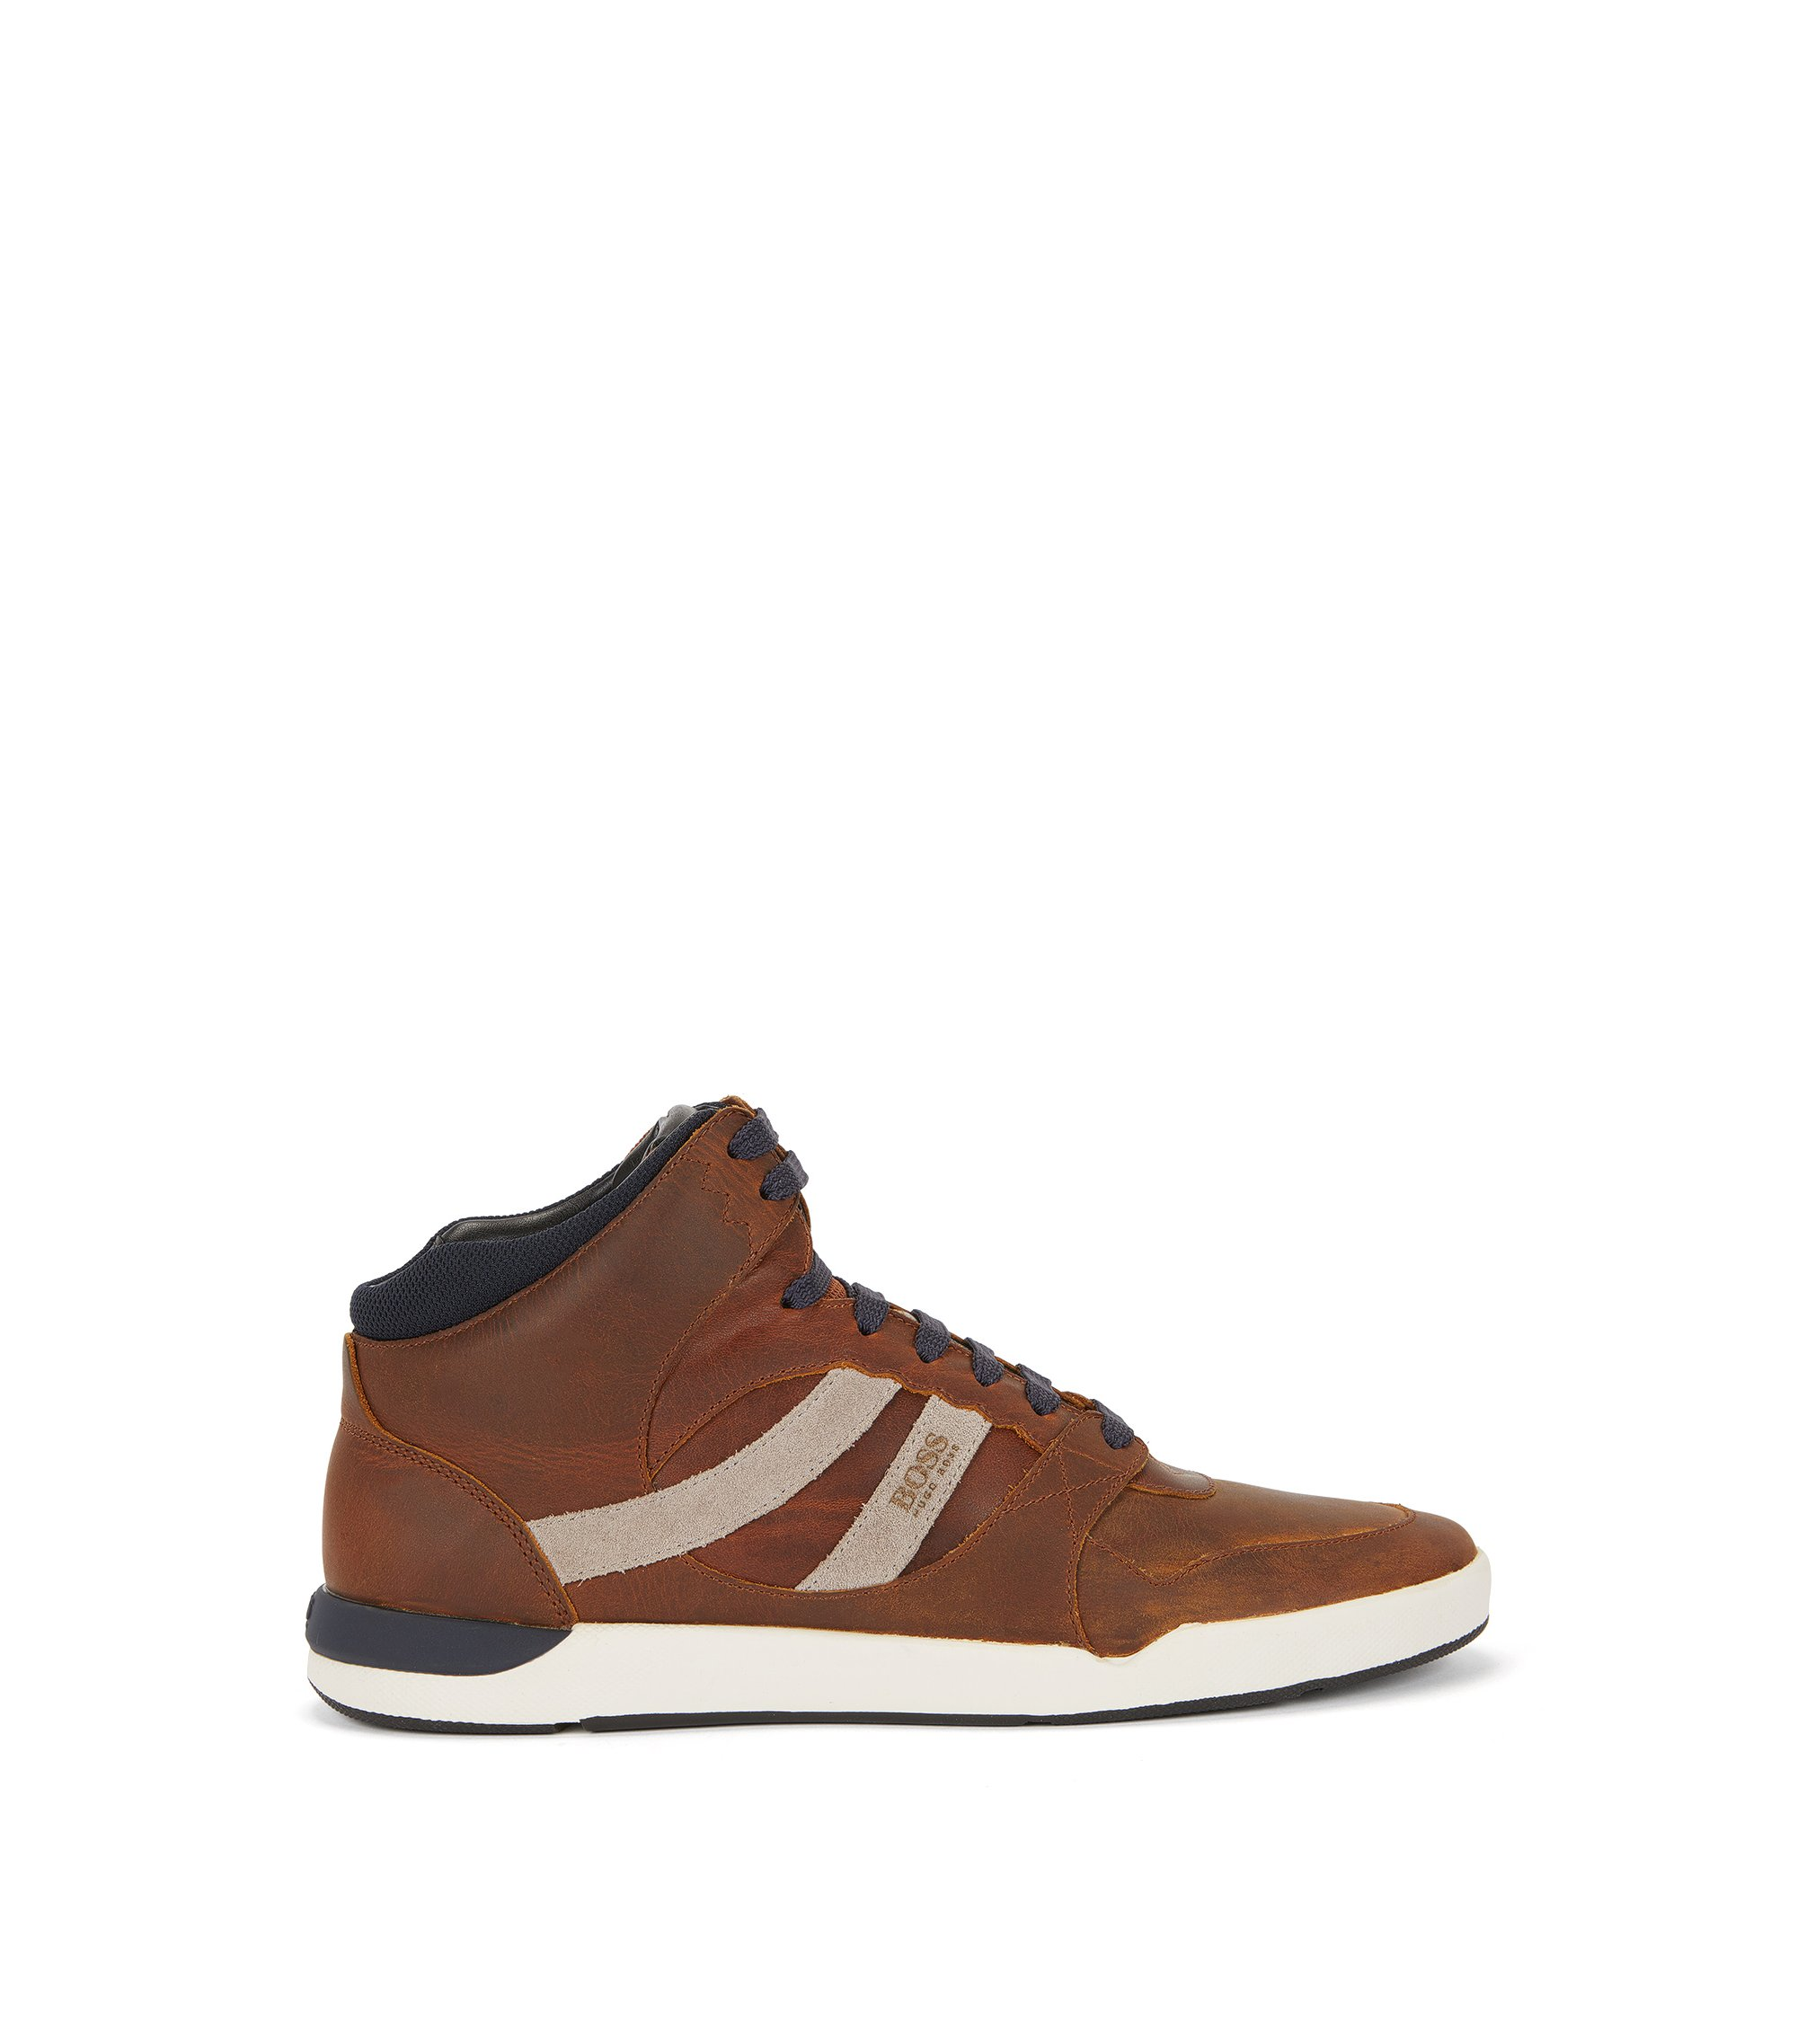 Leather High-Top Sneaker | Stillnes Hito Pp, Brown